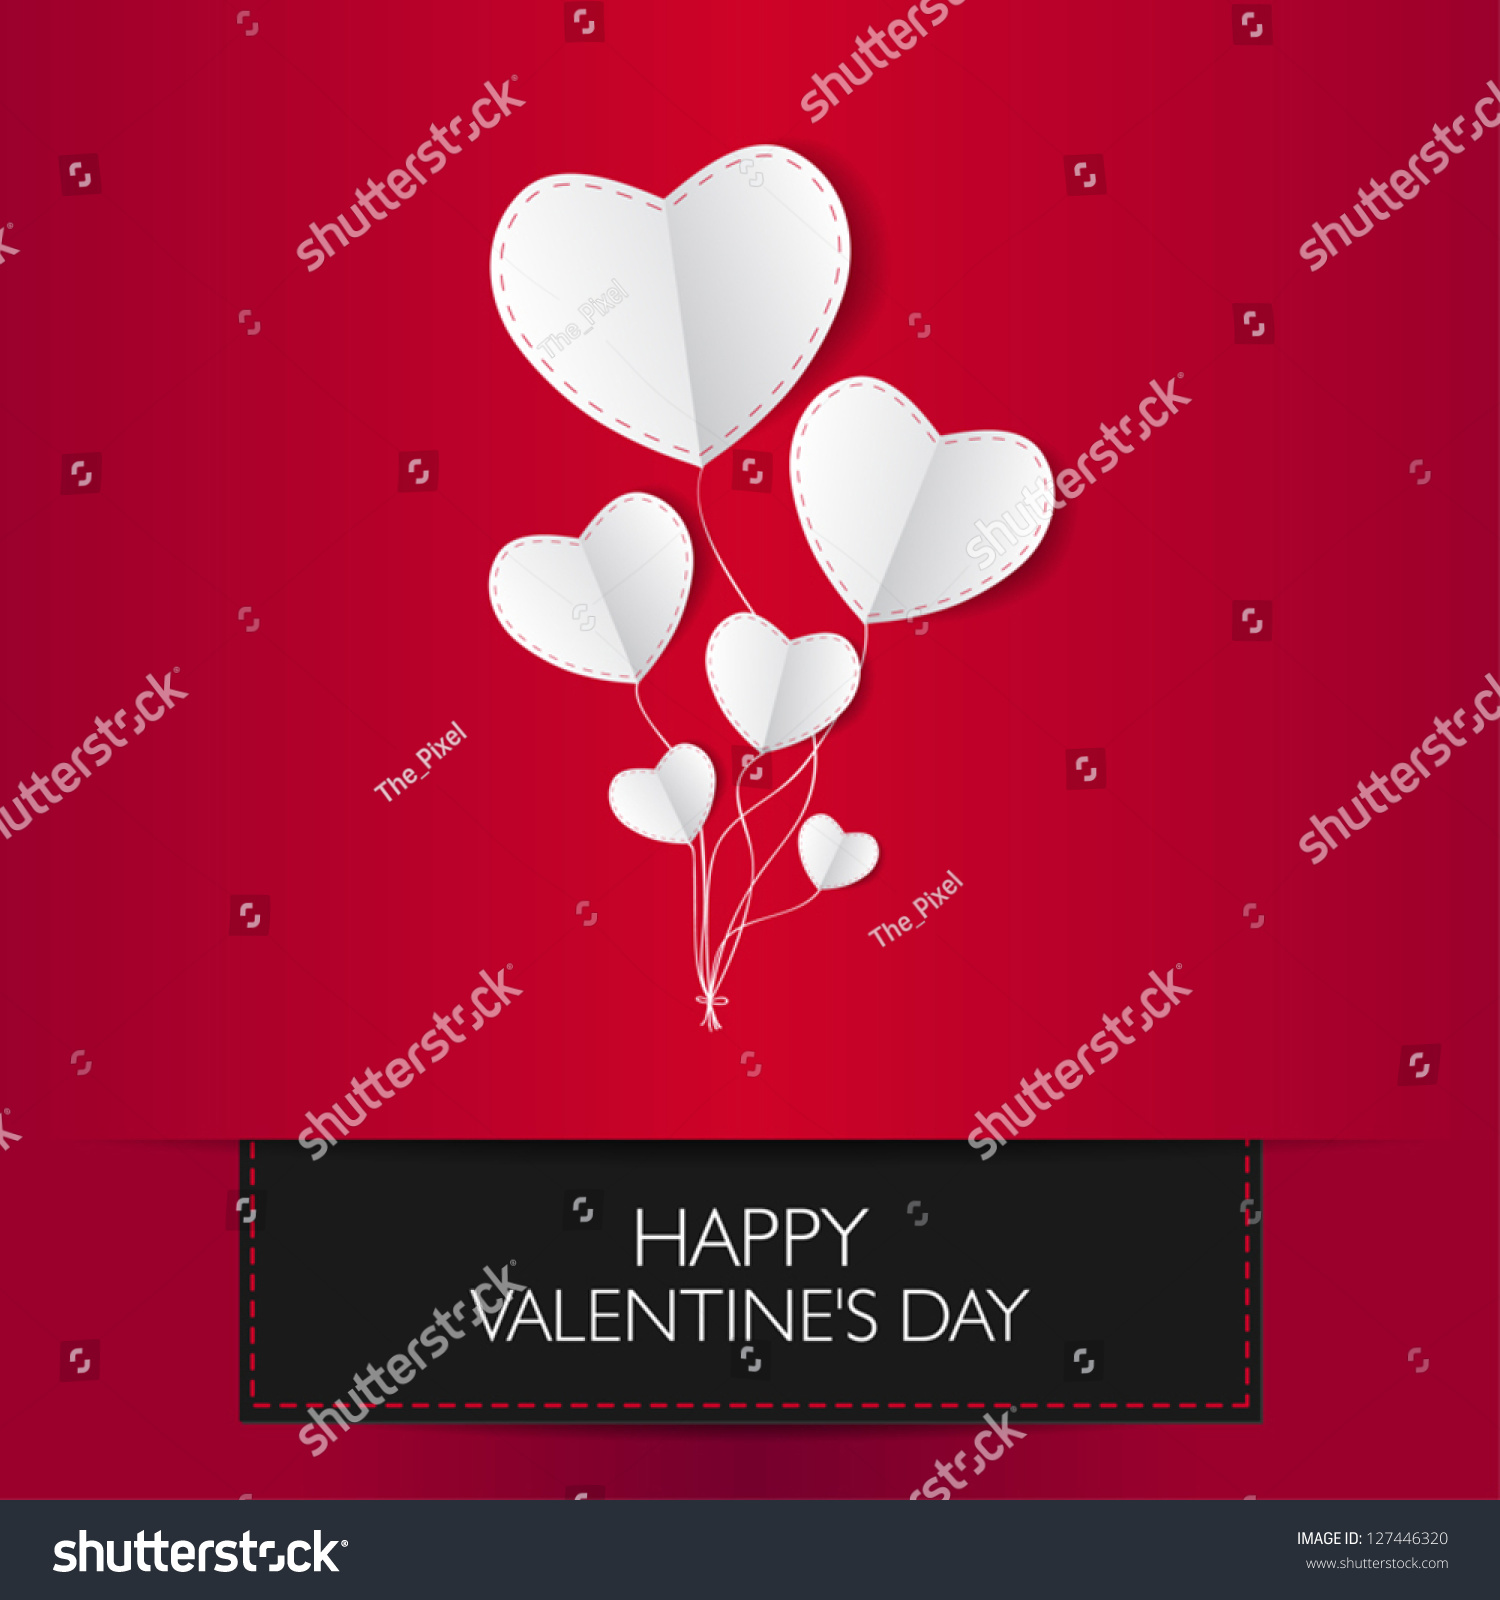 Valentines card text happy valentines day stock vector 127446320 valentines card with text happy valentines day and two paper white or silver heart kristyandbryce Images